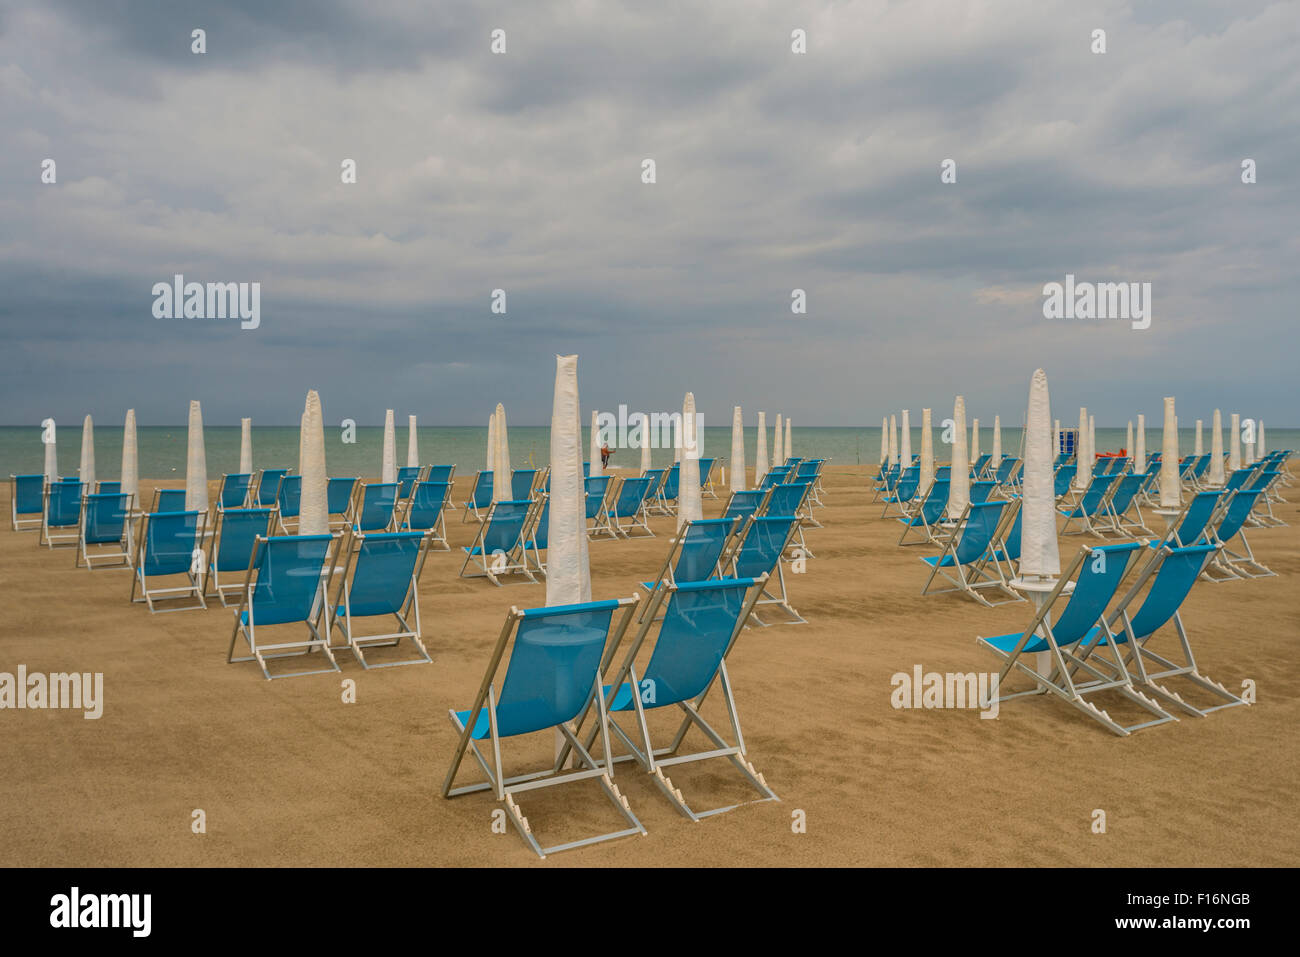 Standing at attention - the army of beach chairs and umbrellas is waiting for the invasion of sun-worshippers - Stock Image